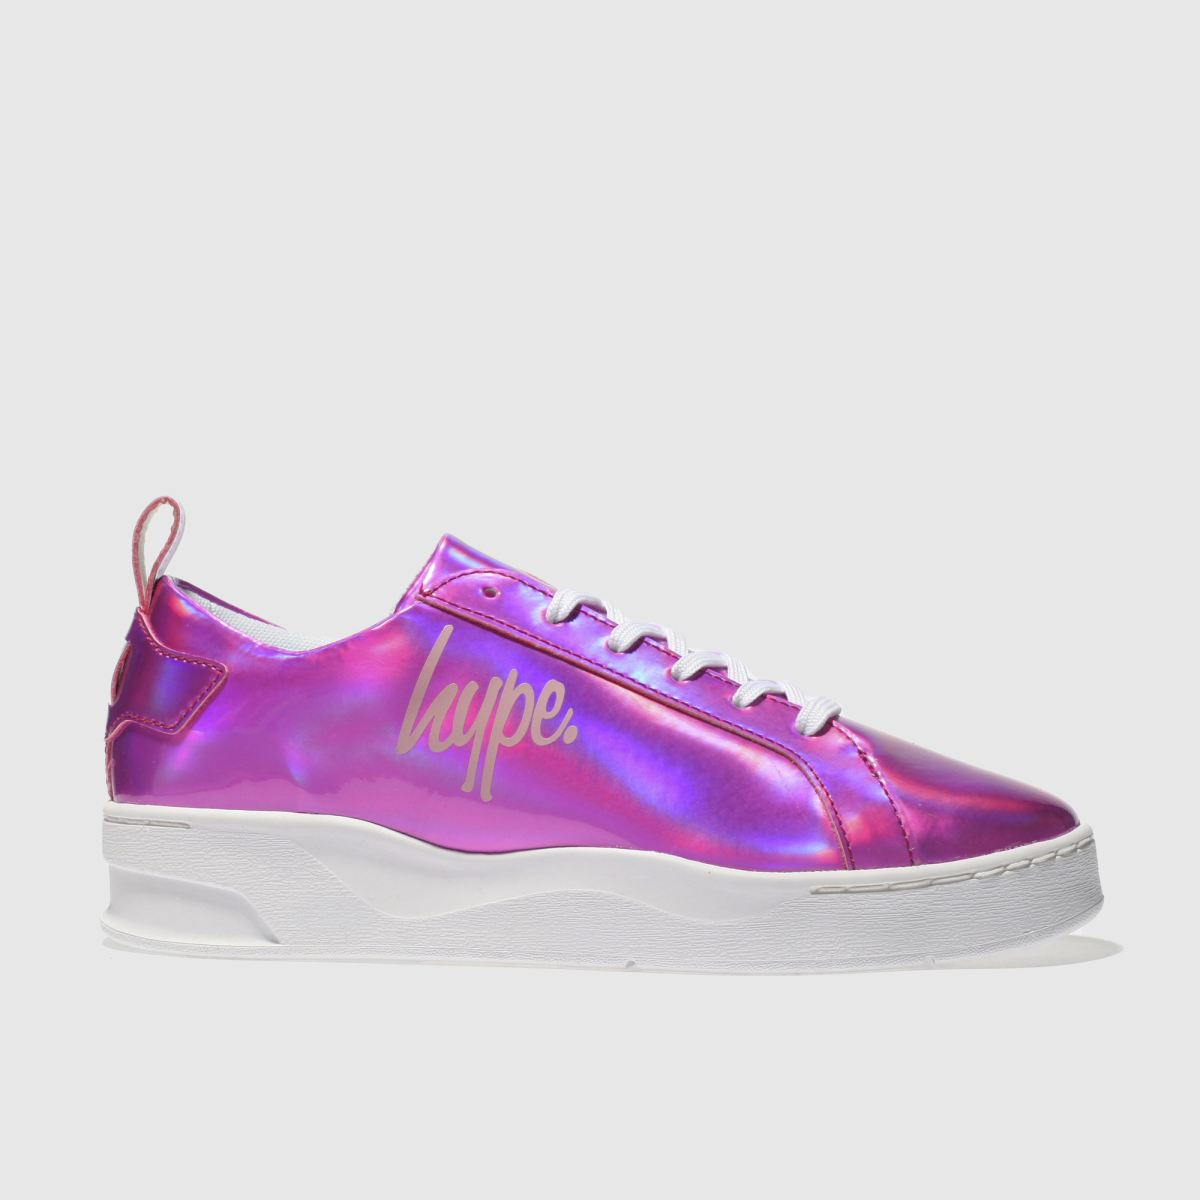 Hype Pink Hologram Reef Trainers